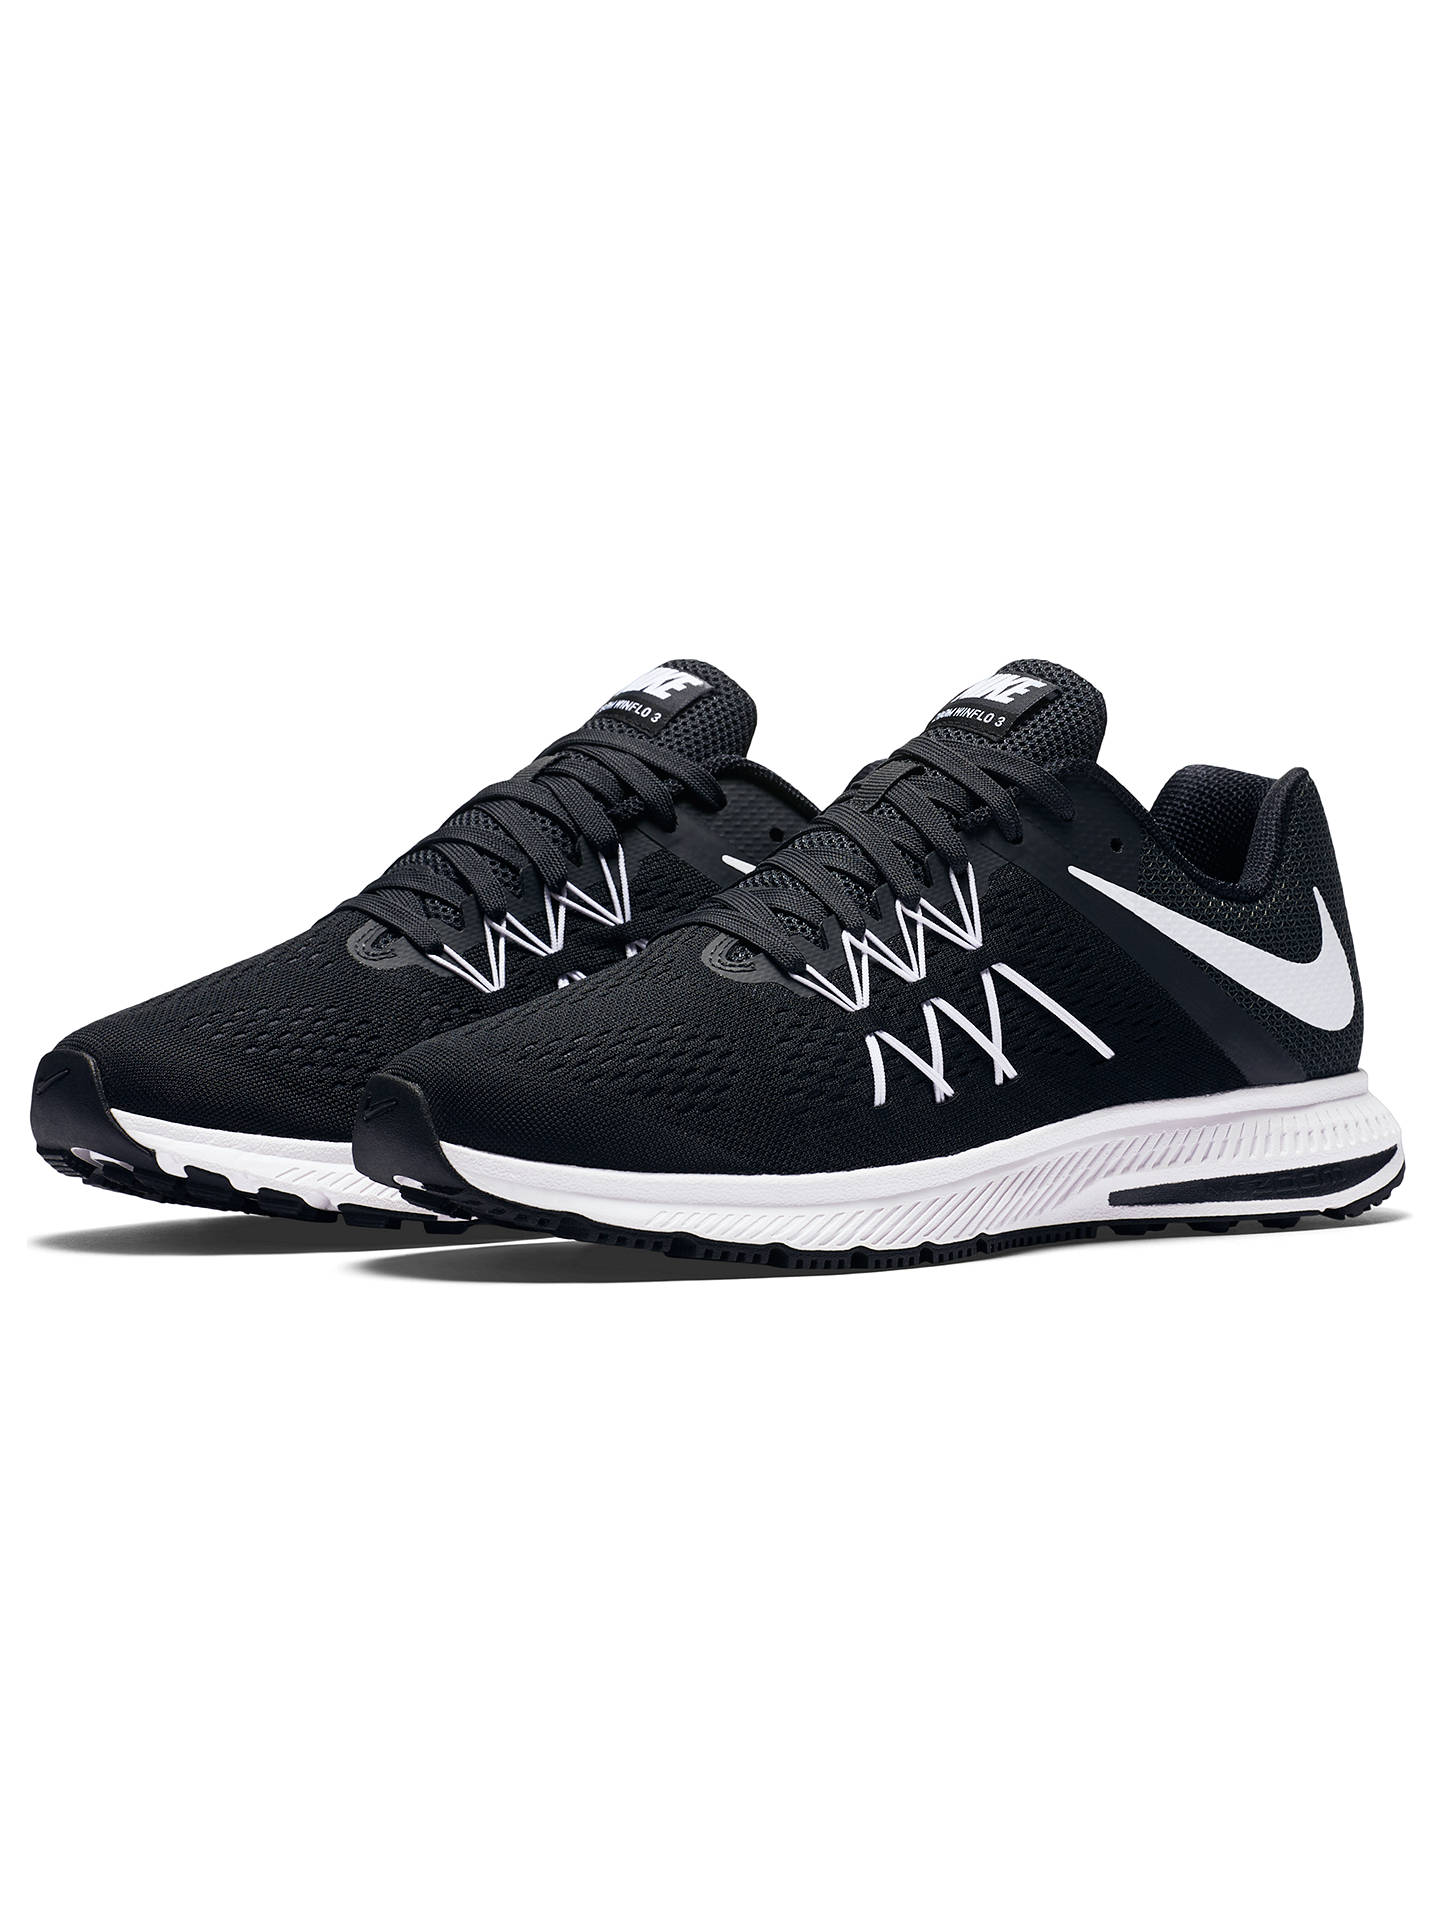 0f9632fc88d1 ... sneakers 831561 401 39028 0ab25  discount buynike air zoom winflo 3  mens running shoes black white 7 online at 2d26e e60db